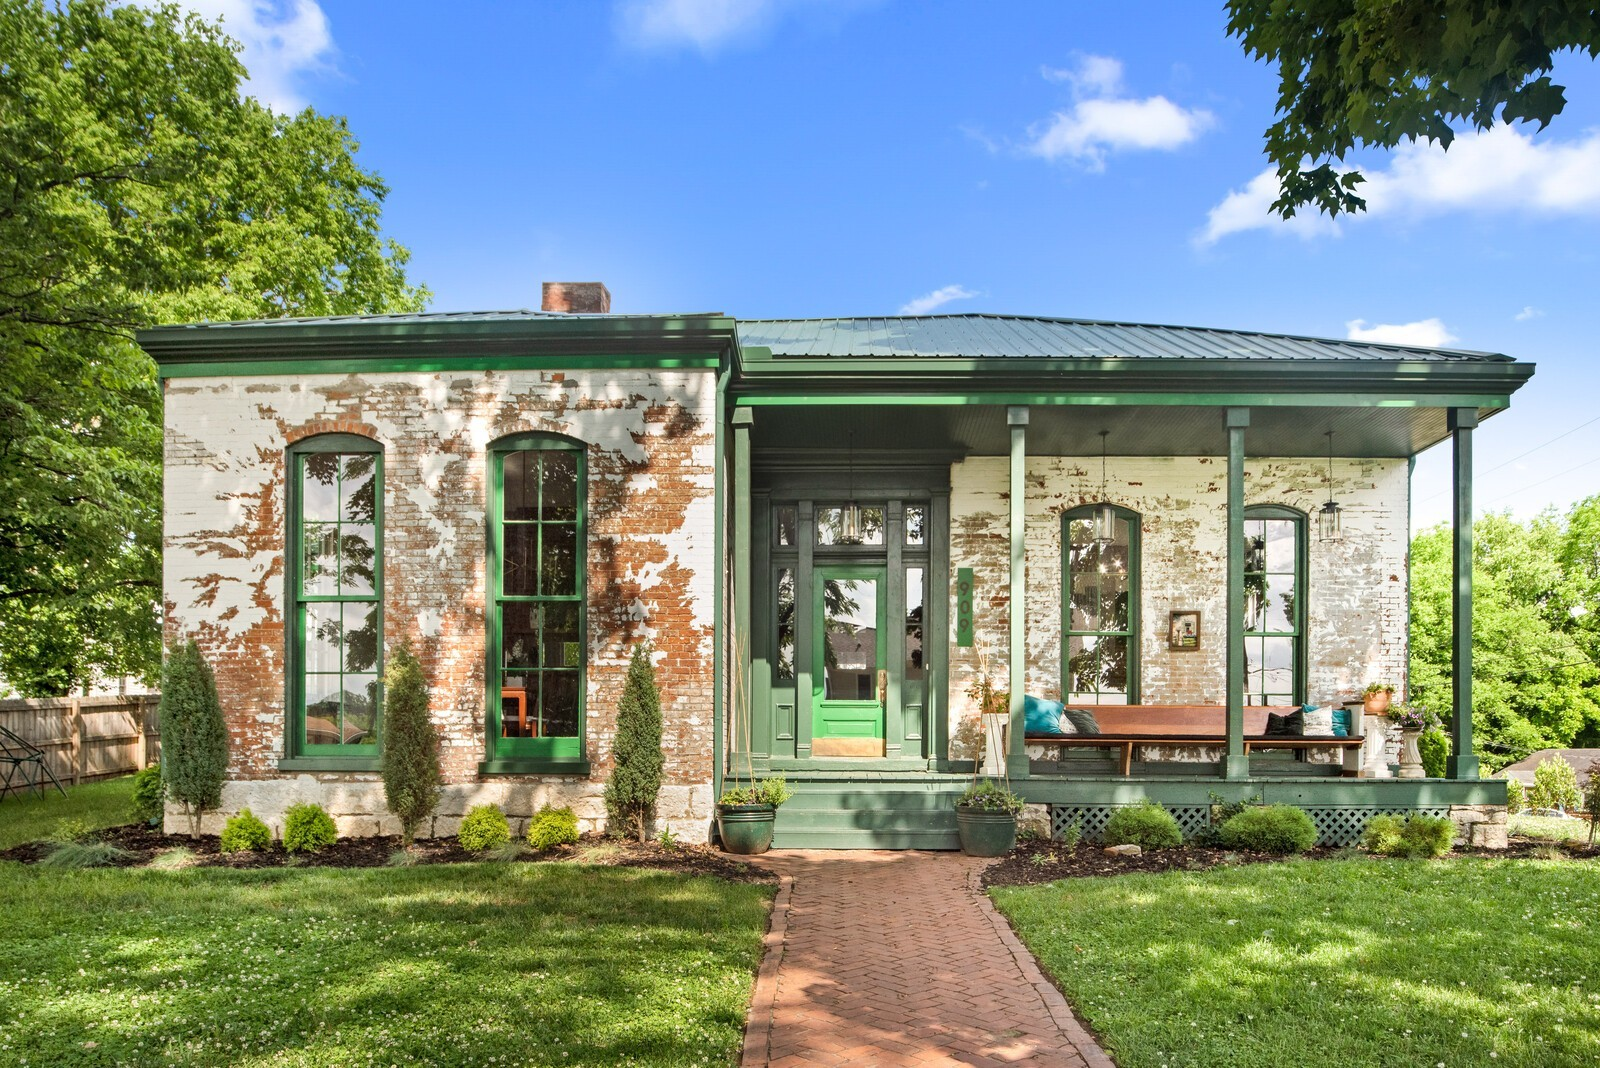 East Nashville Historic Stunner circa 1844 brought to you by the @SHEhabbers. Home of singer/song writer Beth Slater Whitson This one level home has been meticulously restored while maintaining its jaw dropping scale and character. A 1300sf addition was added to create a seamless modern floor plan and an entertainer's dream. Unique features include 13' ceilings, walk through windows, massive double shower w/soaking tub, custom vanities, green fence, rooftop deck and a private income property.